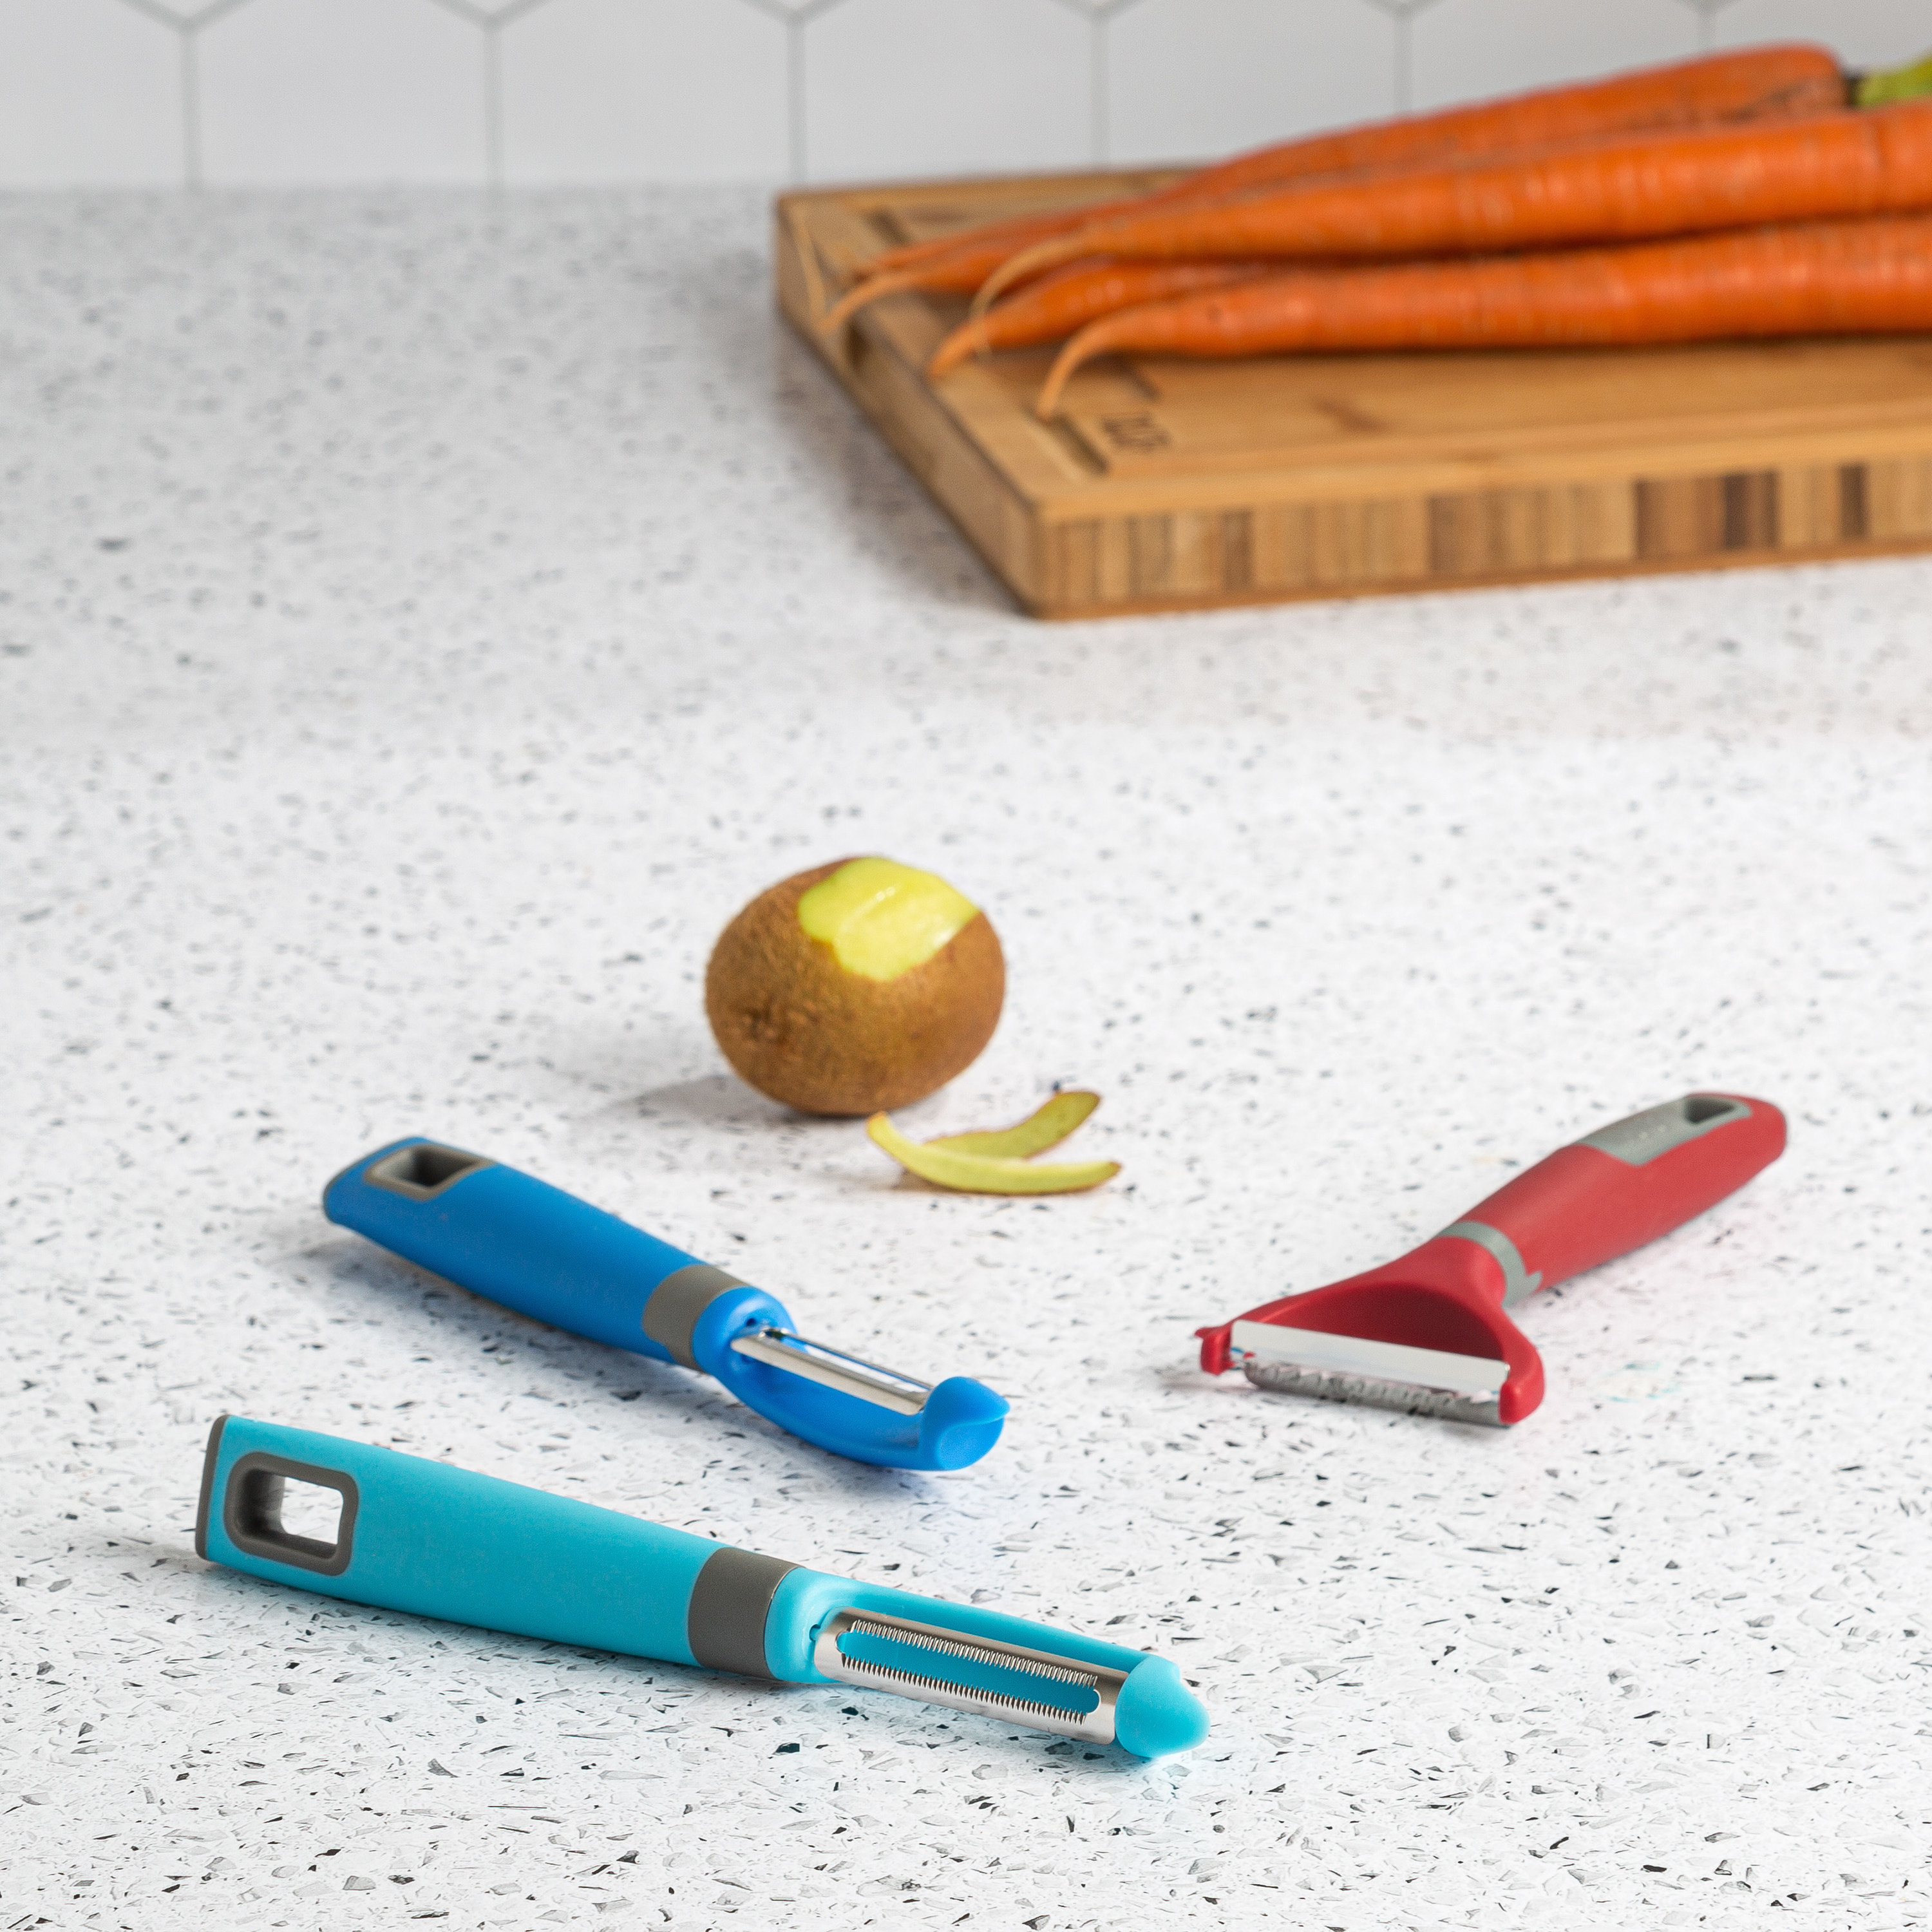 three different peelers on a table next to a kiwi and cutting board